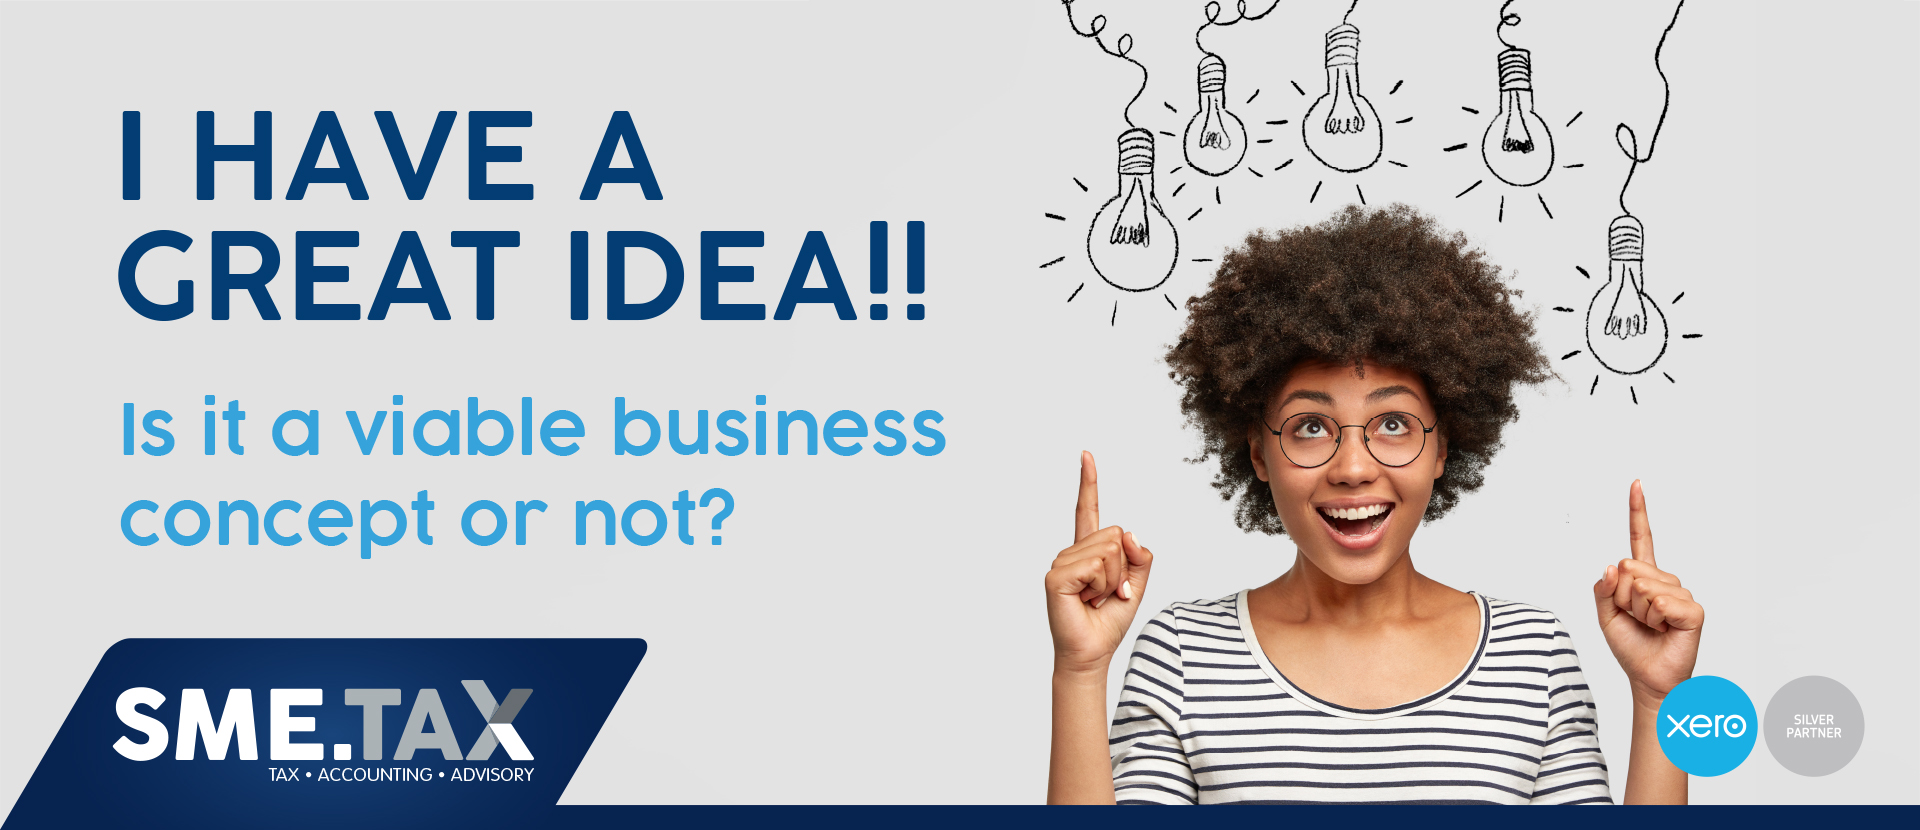 I HAVE AN IDEA!!… Is it a viable business concept or not? 3